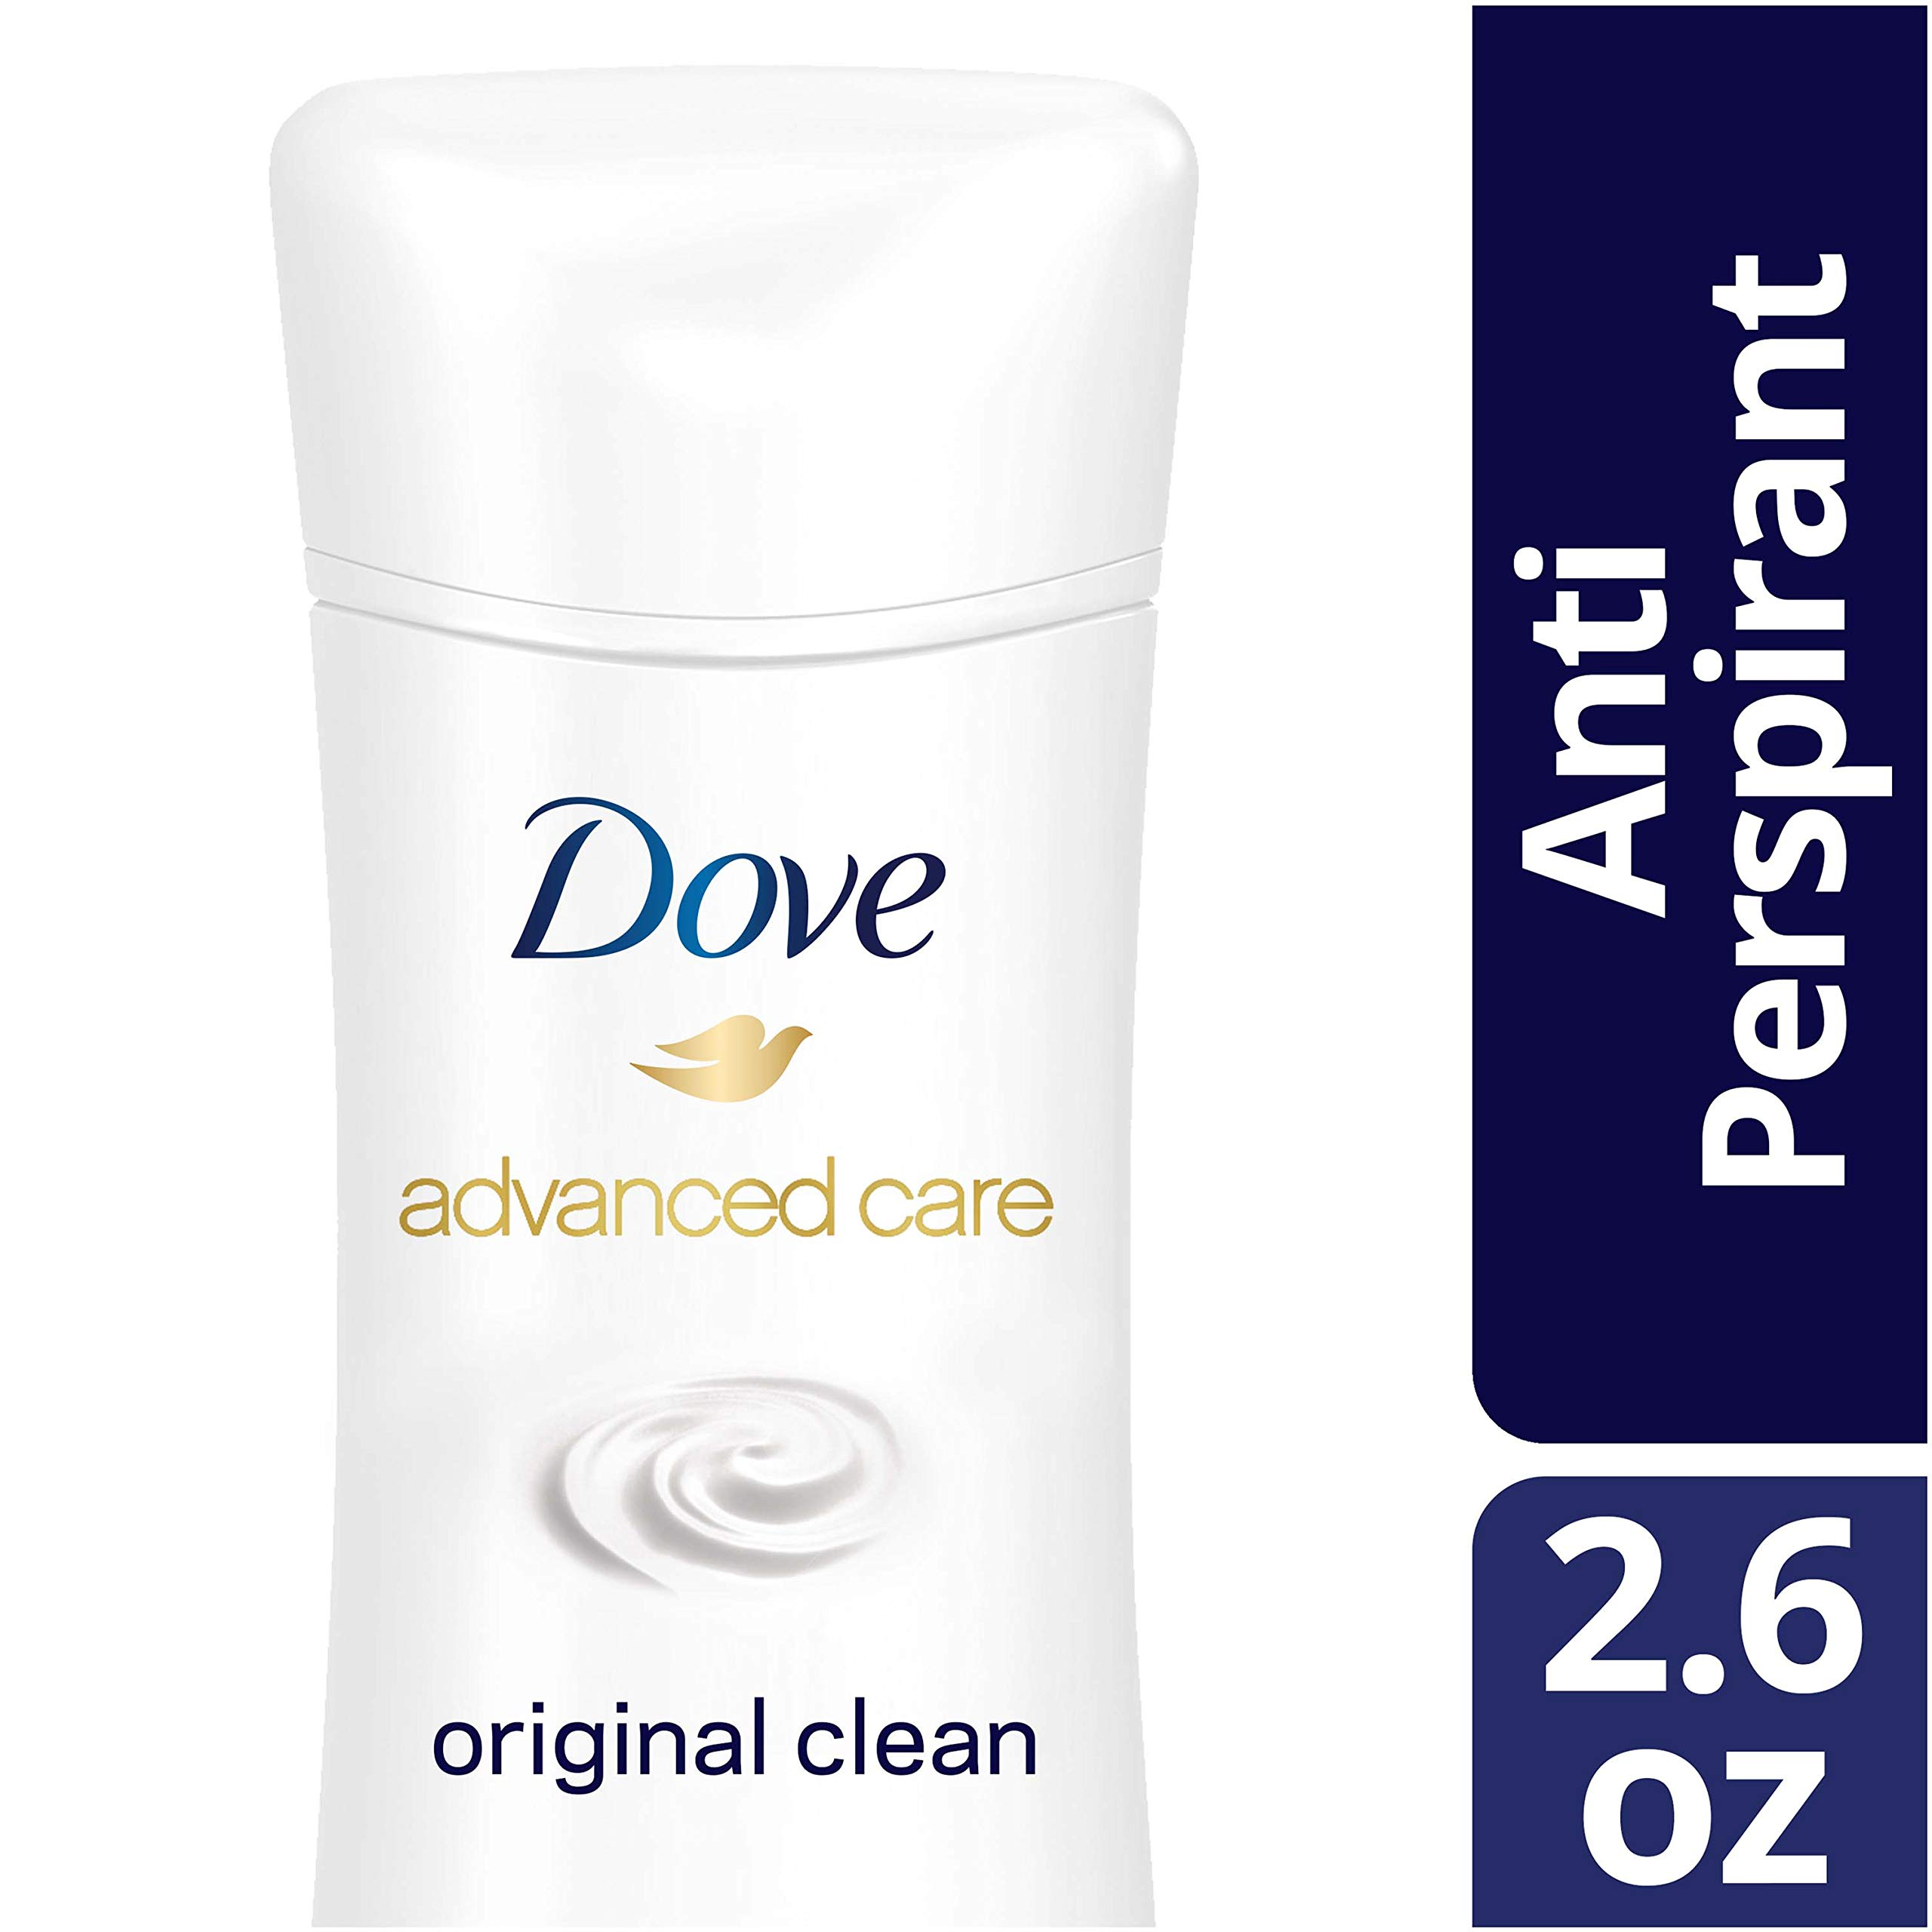 Dove Antiperspirant Deodorant, Original Clean, 2.6 oz